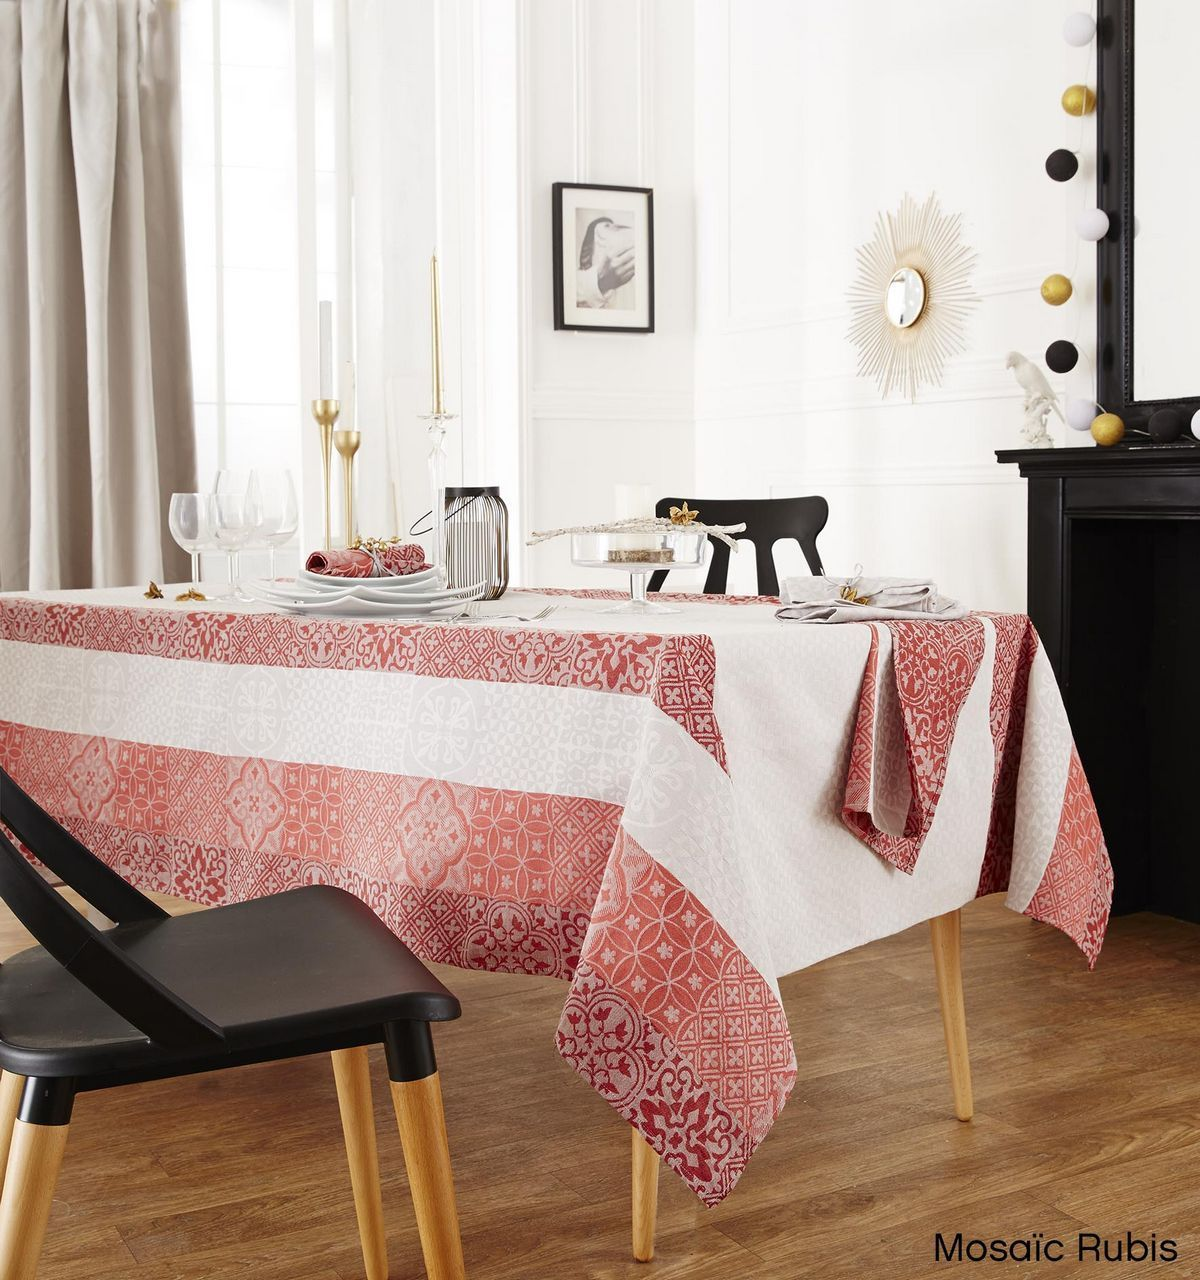 nappe mosa c rubis jacquard 150x150 rubis jacquard et nappes. Black Bedroom Furniture Sets. Home Design Ideas